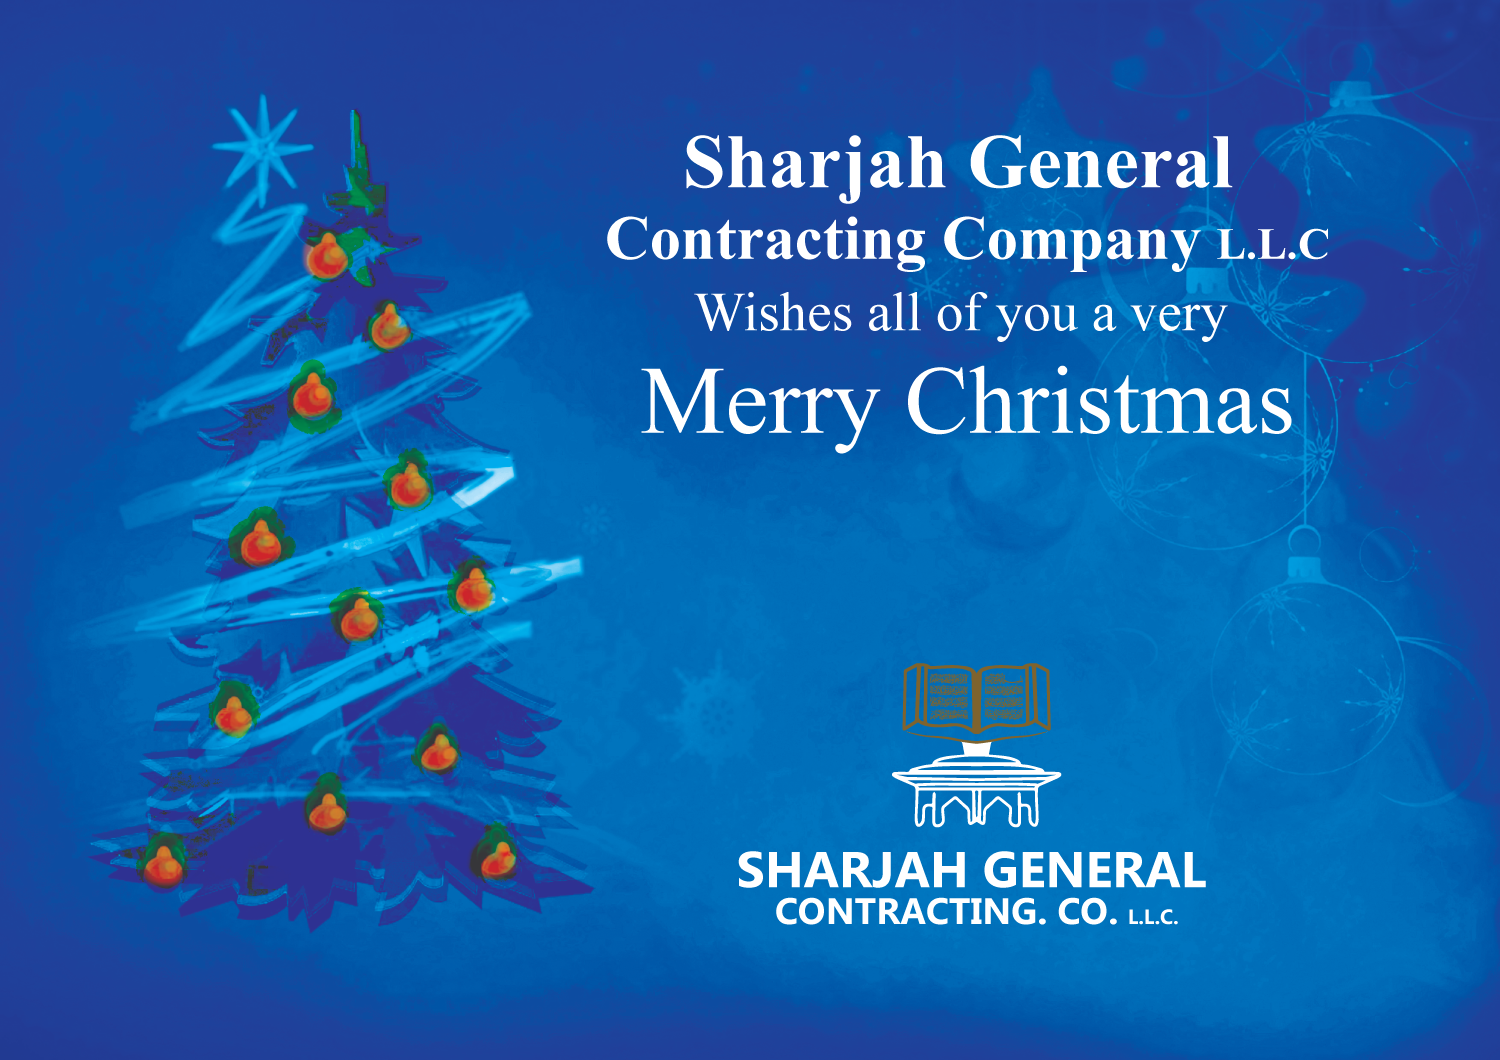 Sgccseason Greeting Merry Christmas 2014 Sharjah General